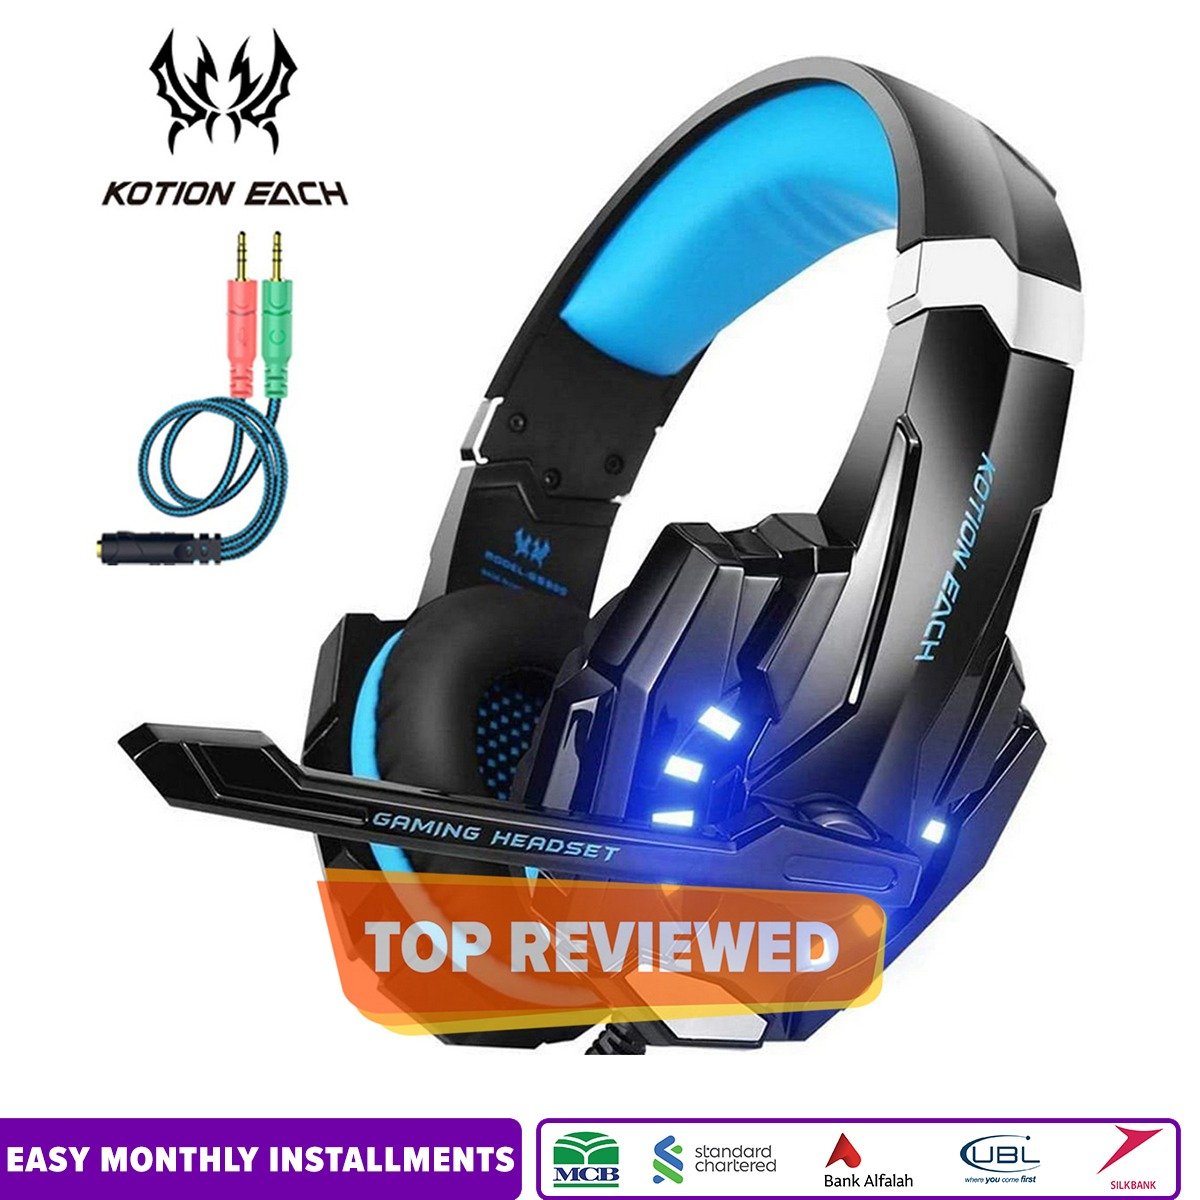 Kotion Each G9000 Stereo Gaming Headset for PS4, PC, Xbox One Controller, Noise Cancelling Over Ear Headphones with Mic, LED Light, Bass Surround, Soft Memory Earmuffs for Laptop - Blue